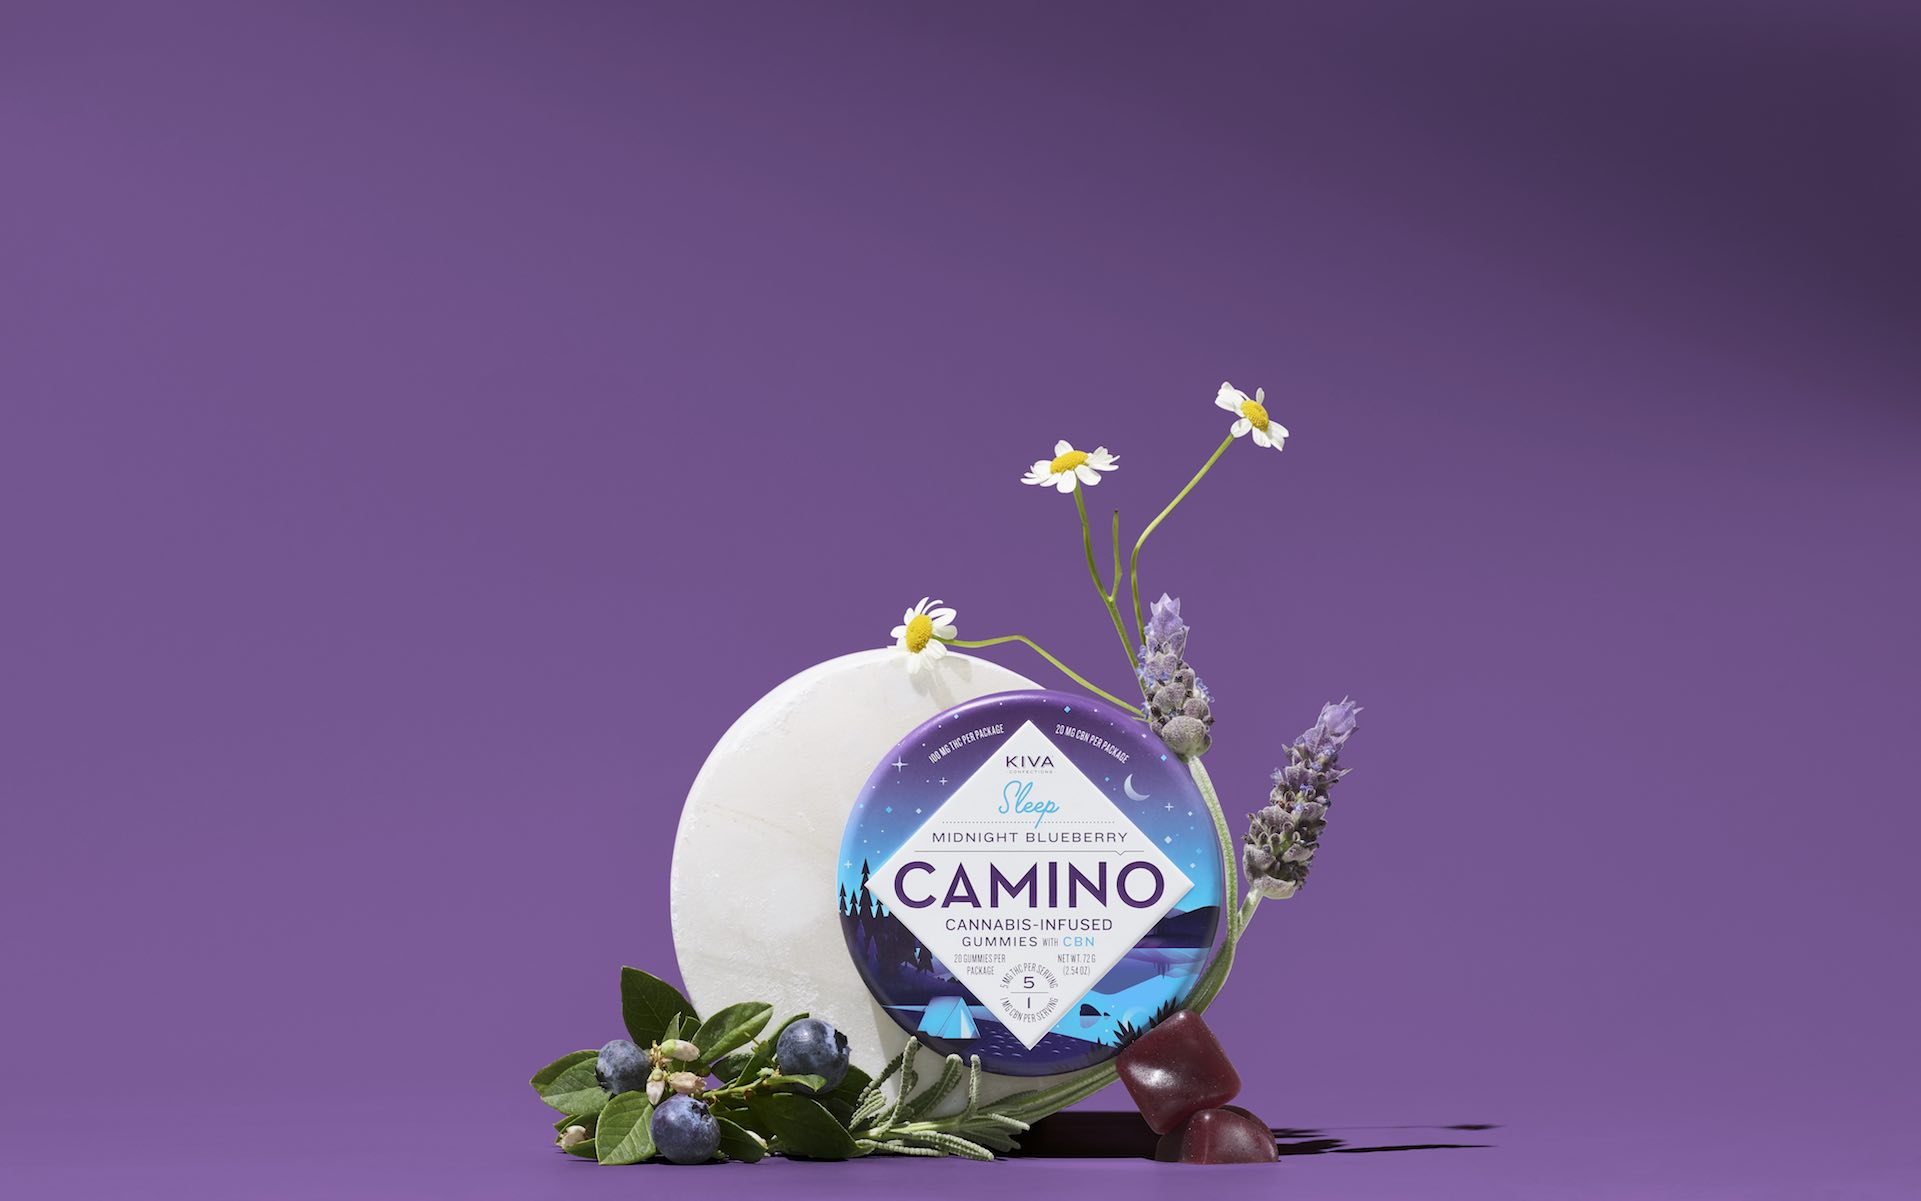 Kiva's Camino gummies are the hot Mother's Day item for California 2020. (Kiva)